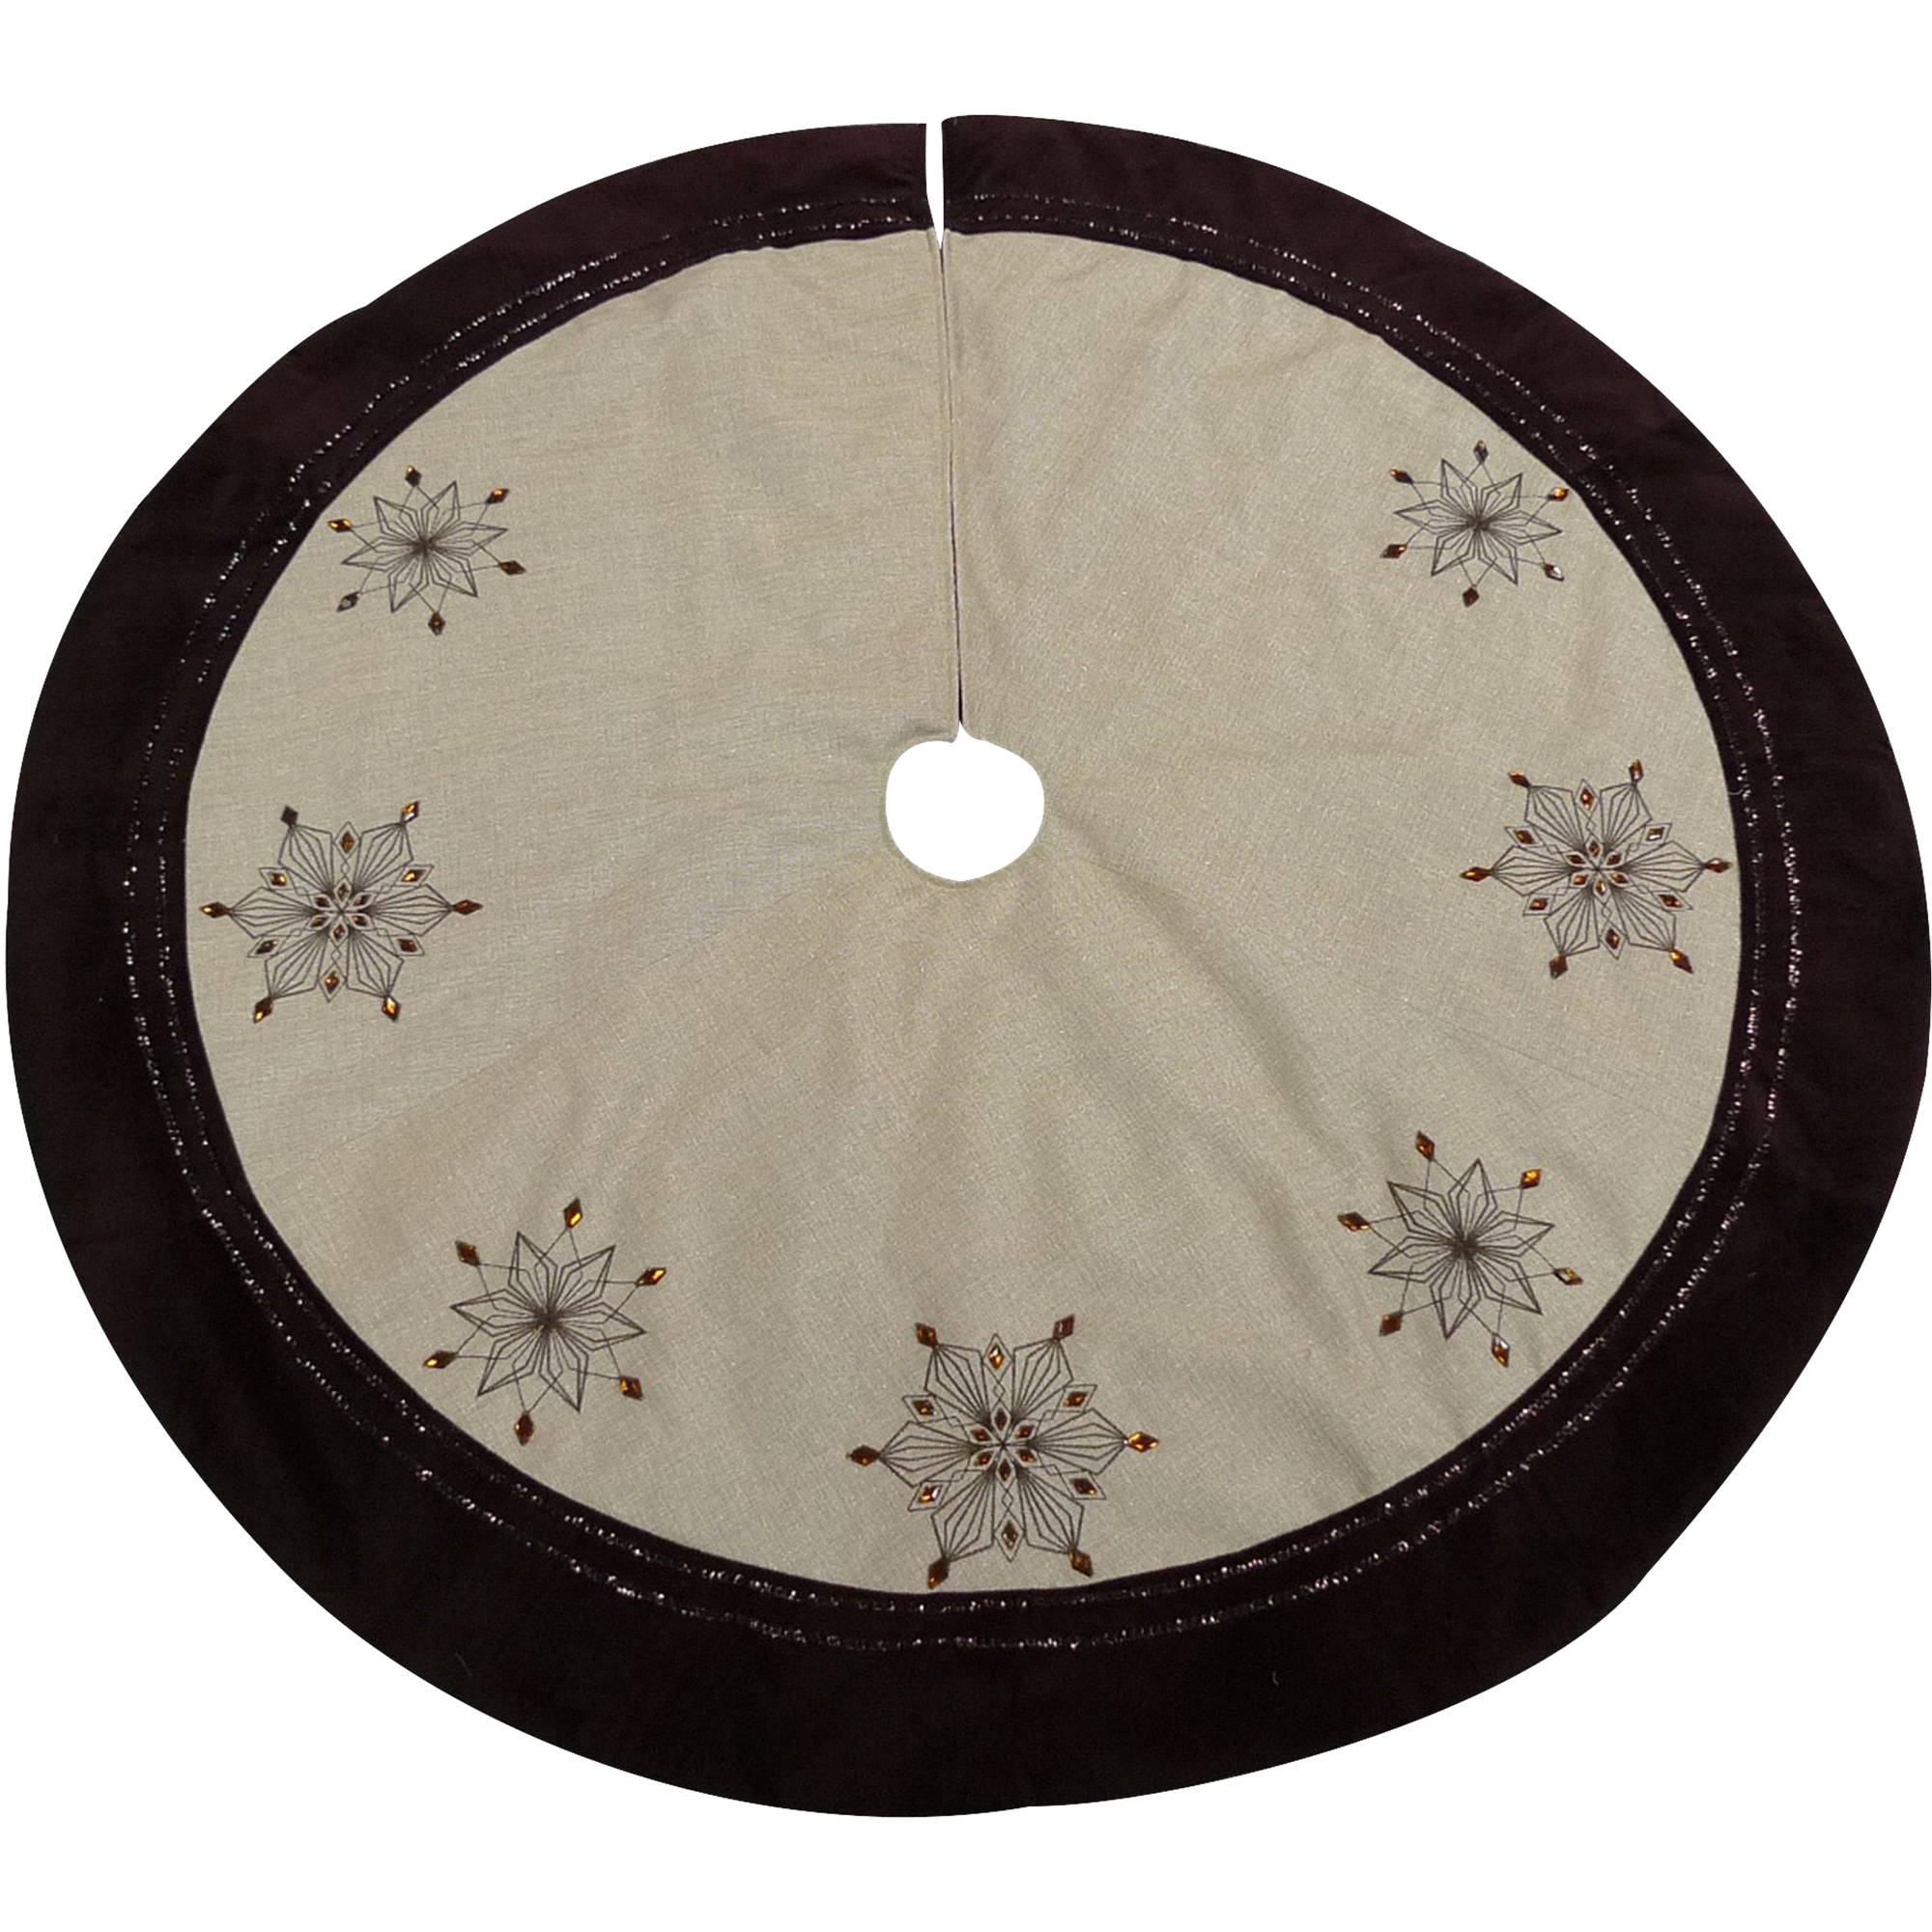 CENTRESKY CRAFTSSHANTOUCO.,LTD Holiday Time Christmas Decor 56 Brown Trim with Jewel Tree Skirt